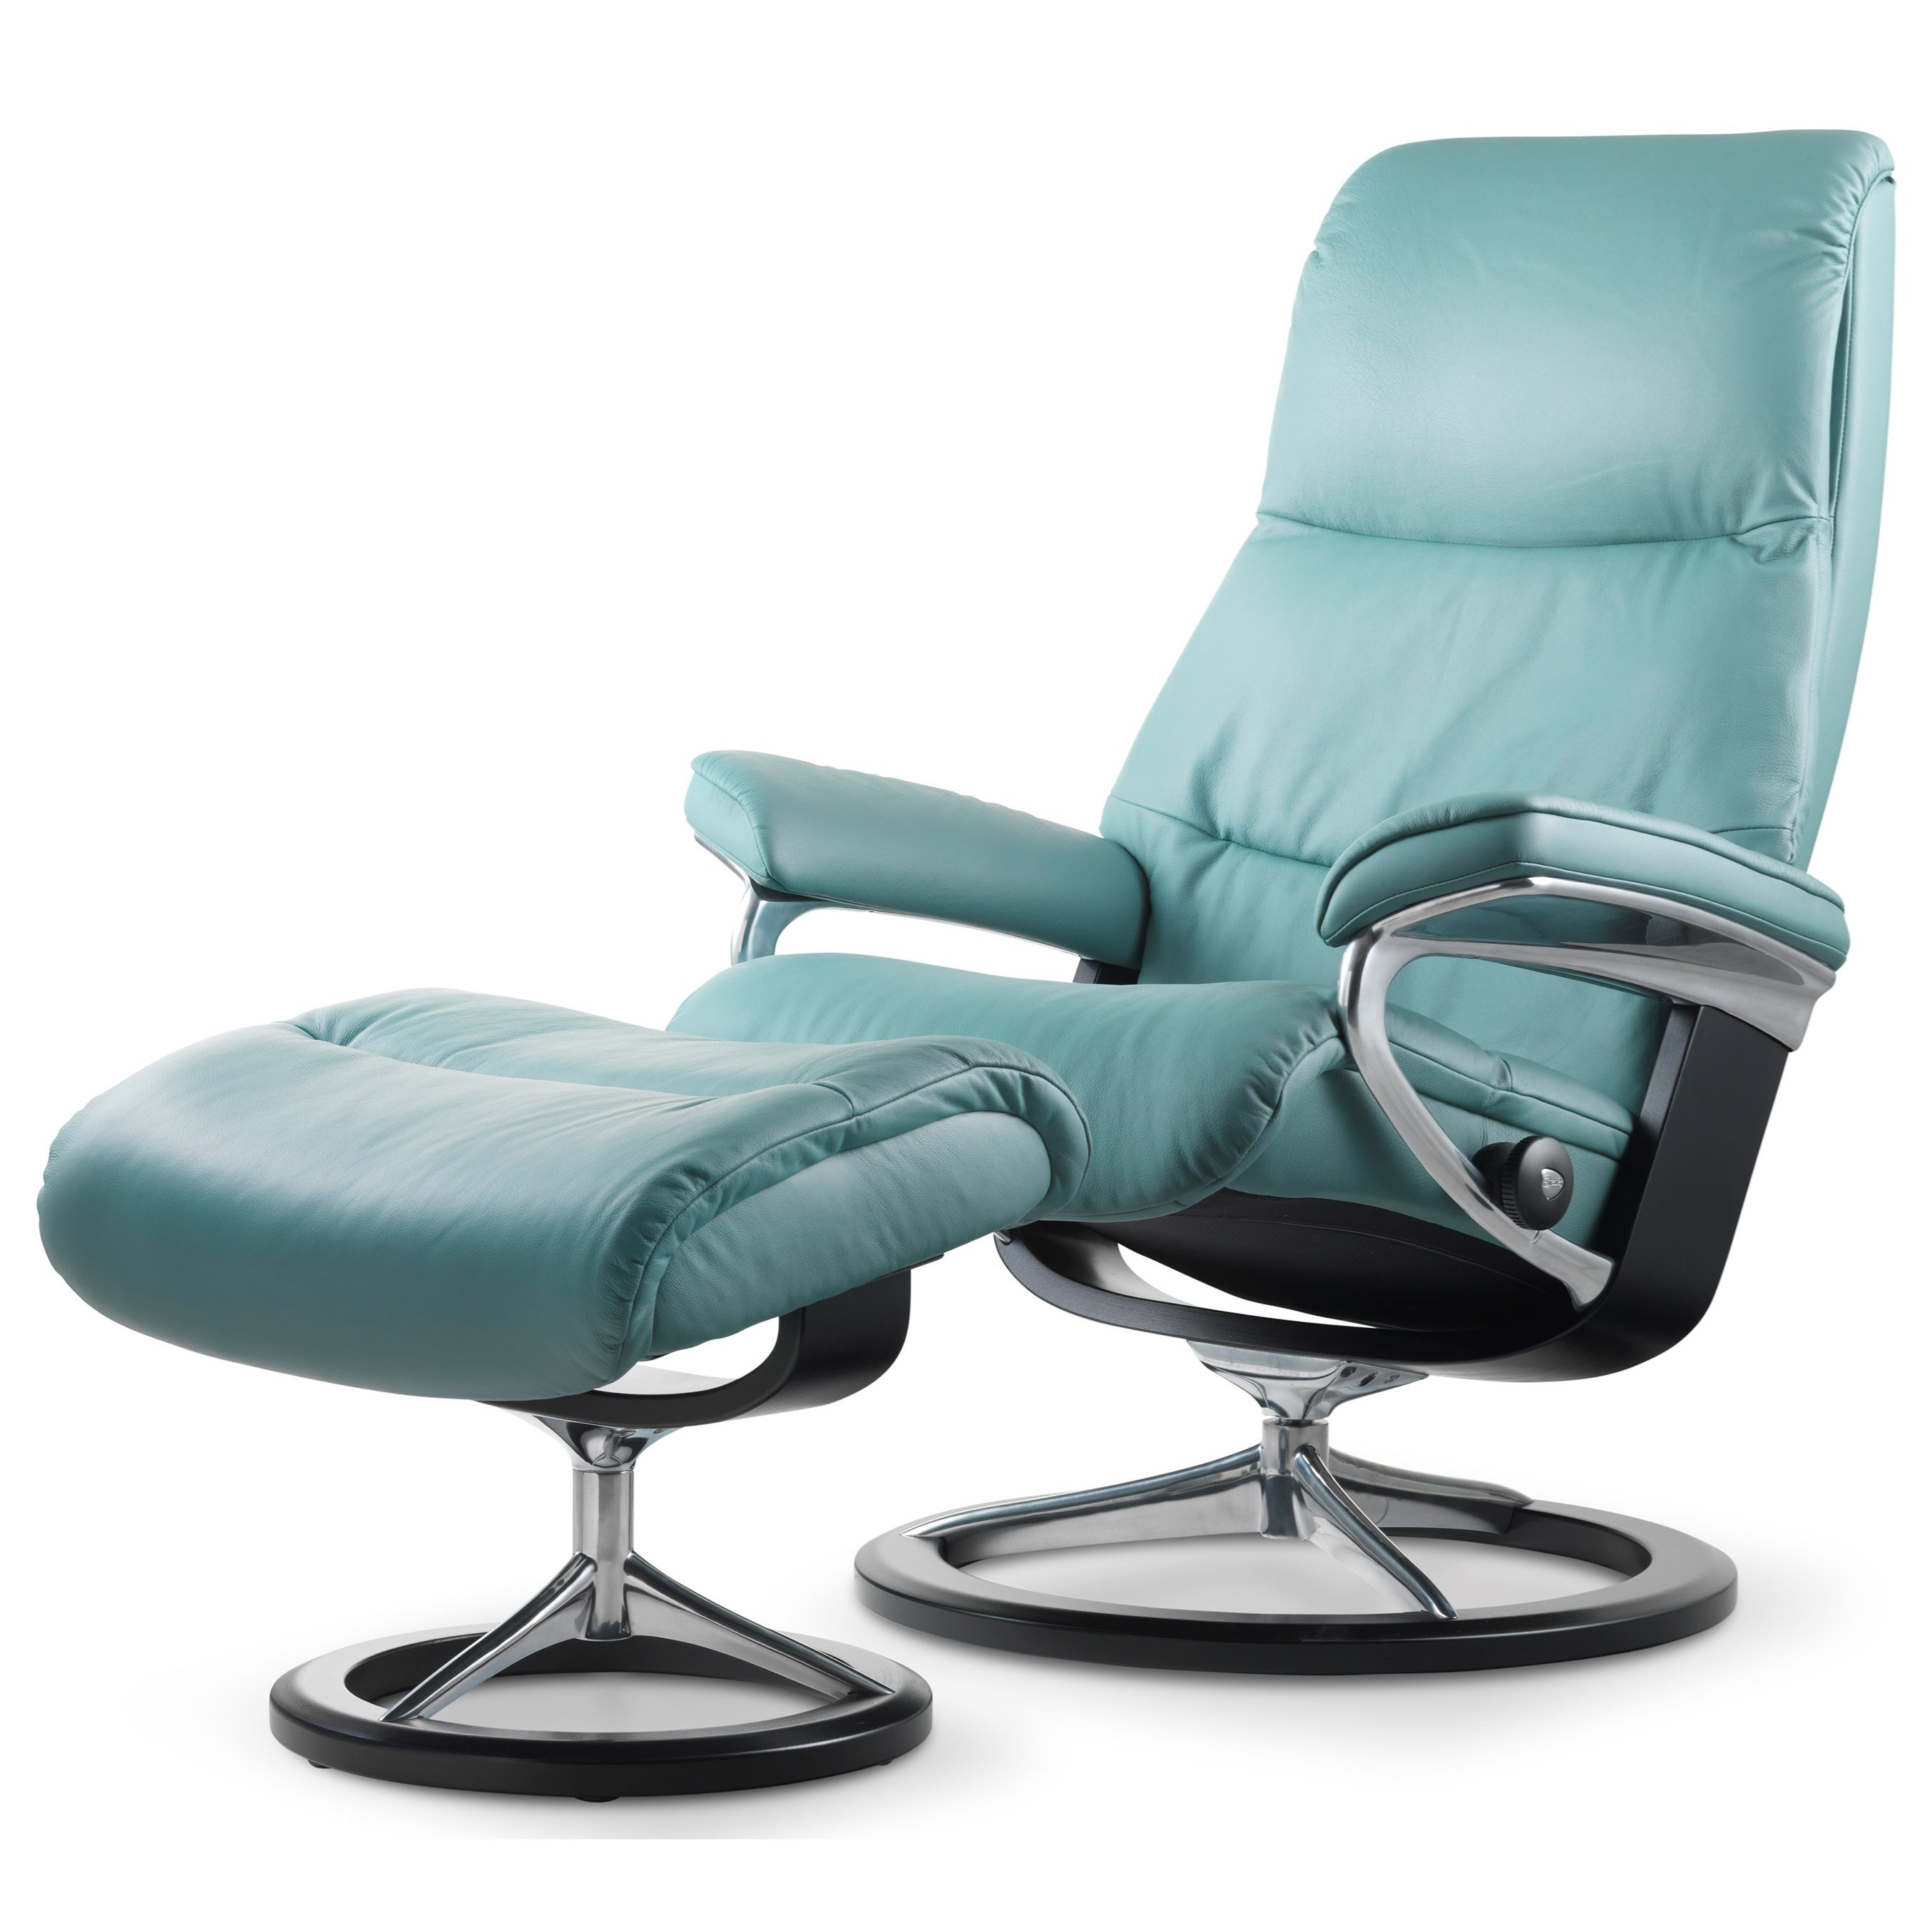 View Small Chair & Ottoman with Signature Base by Stressless at Virginia Furniture Market